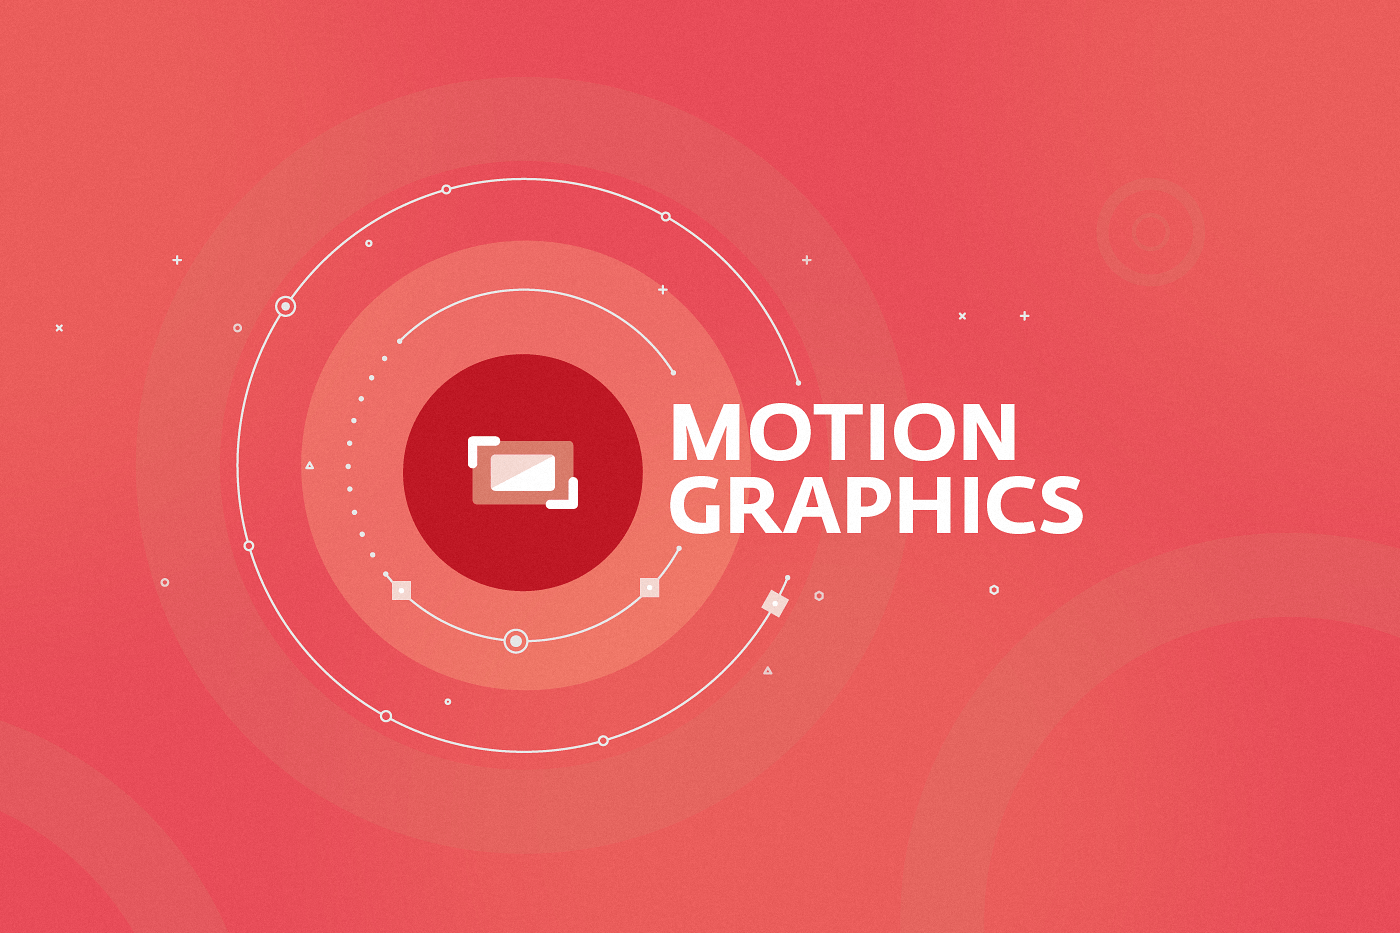 motiongraphics - Making Art from Lines